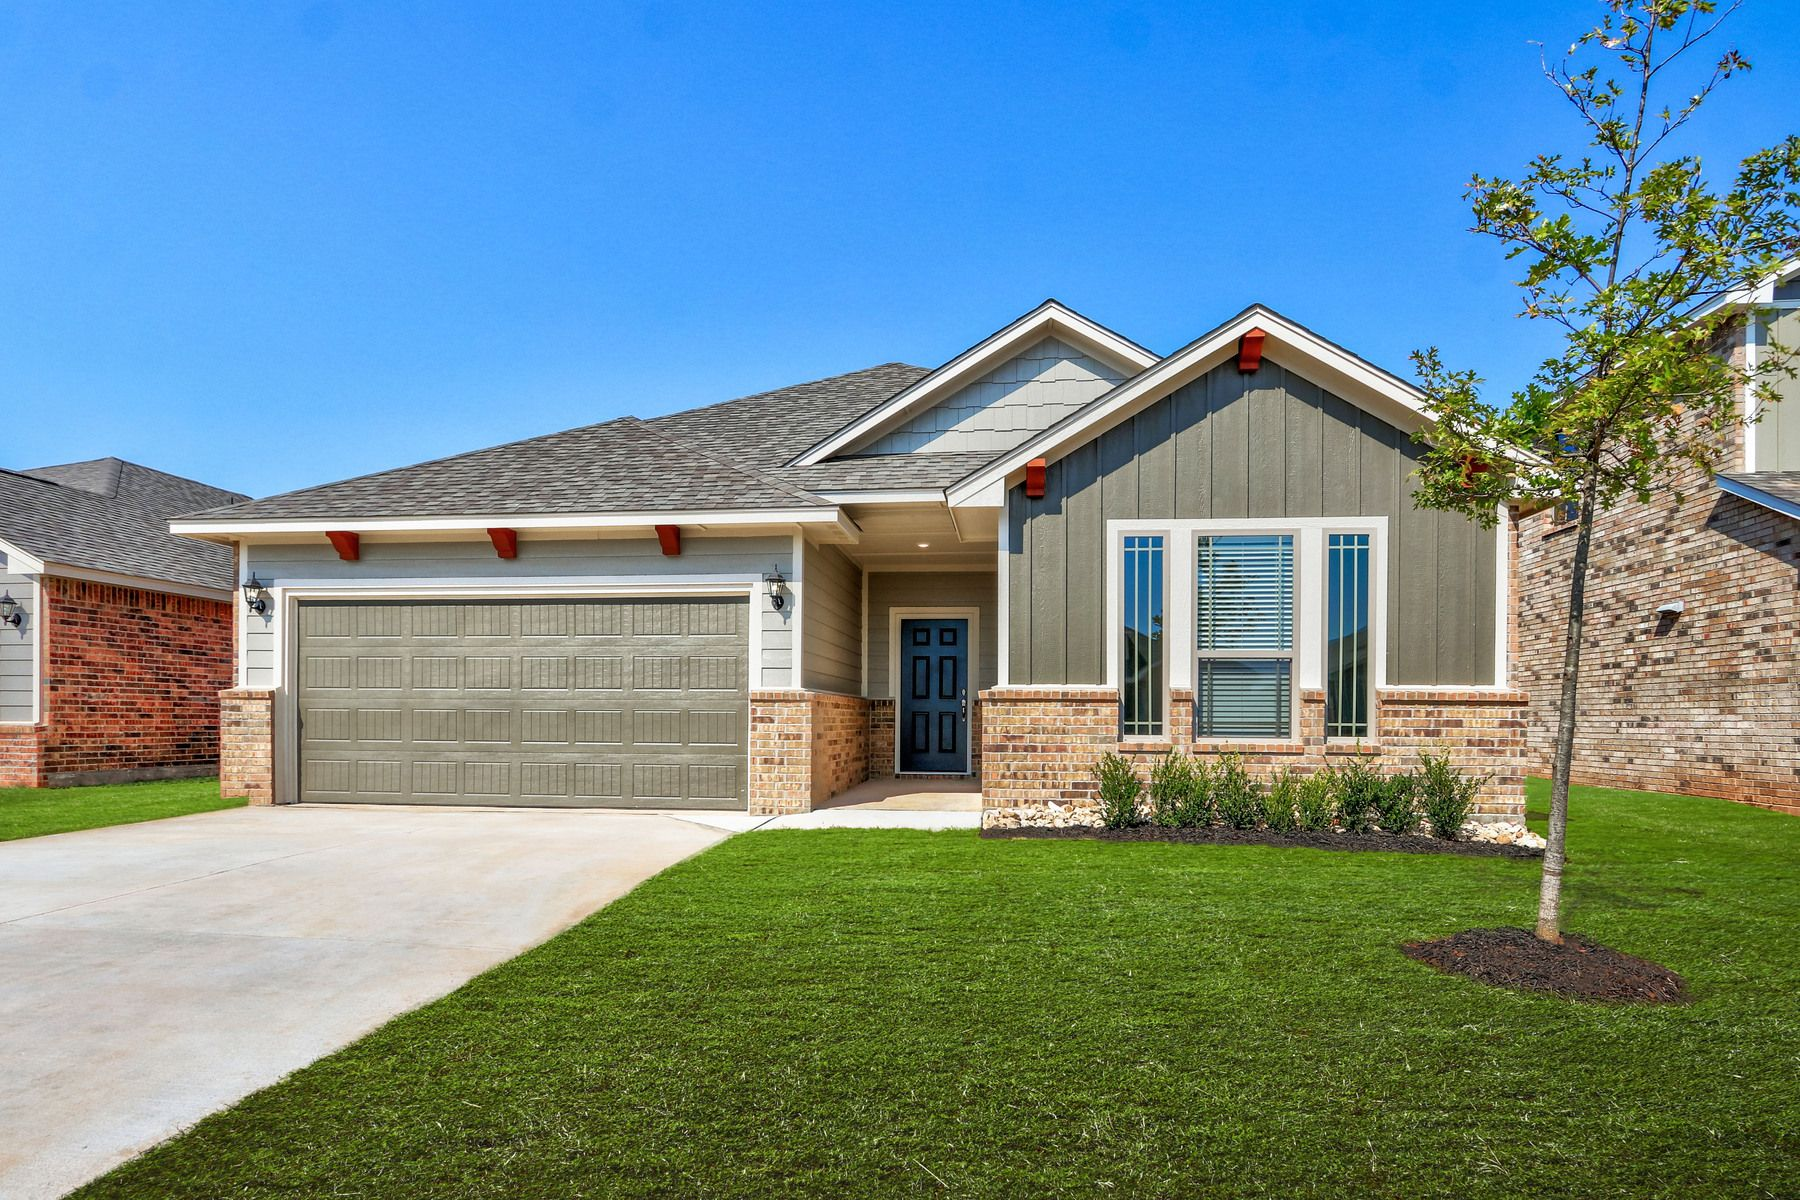 LGI Homes at Wyndemere:The Keaton plan is a gorgeous one-story home at Wyndemere.